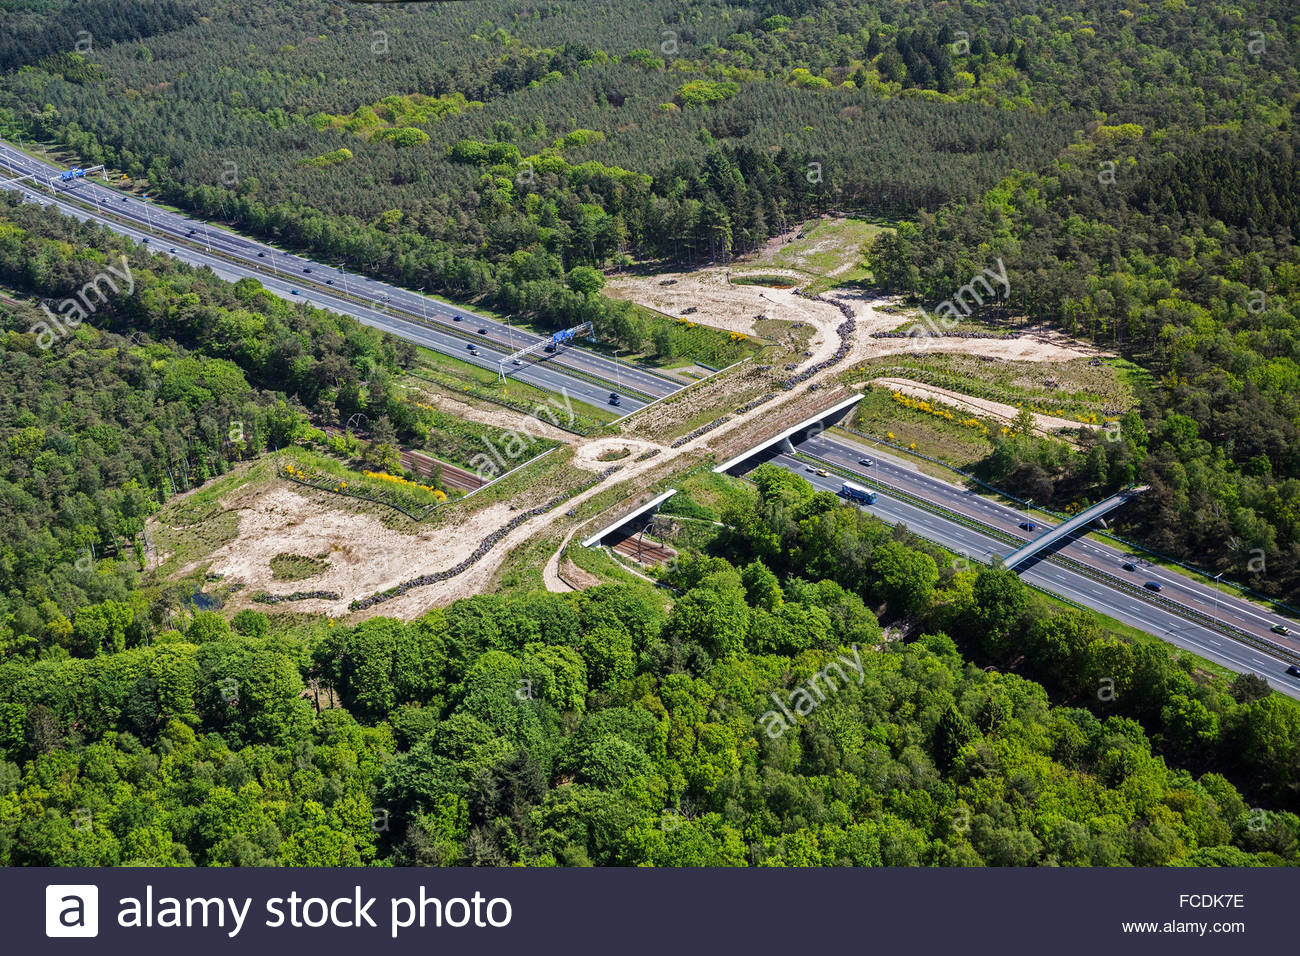 Netherlands, Hilversum, Ecoduct over A27 highway. Aerial ...